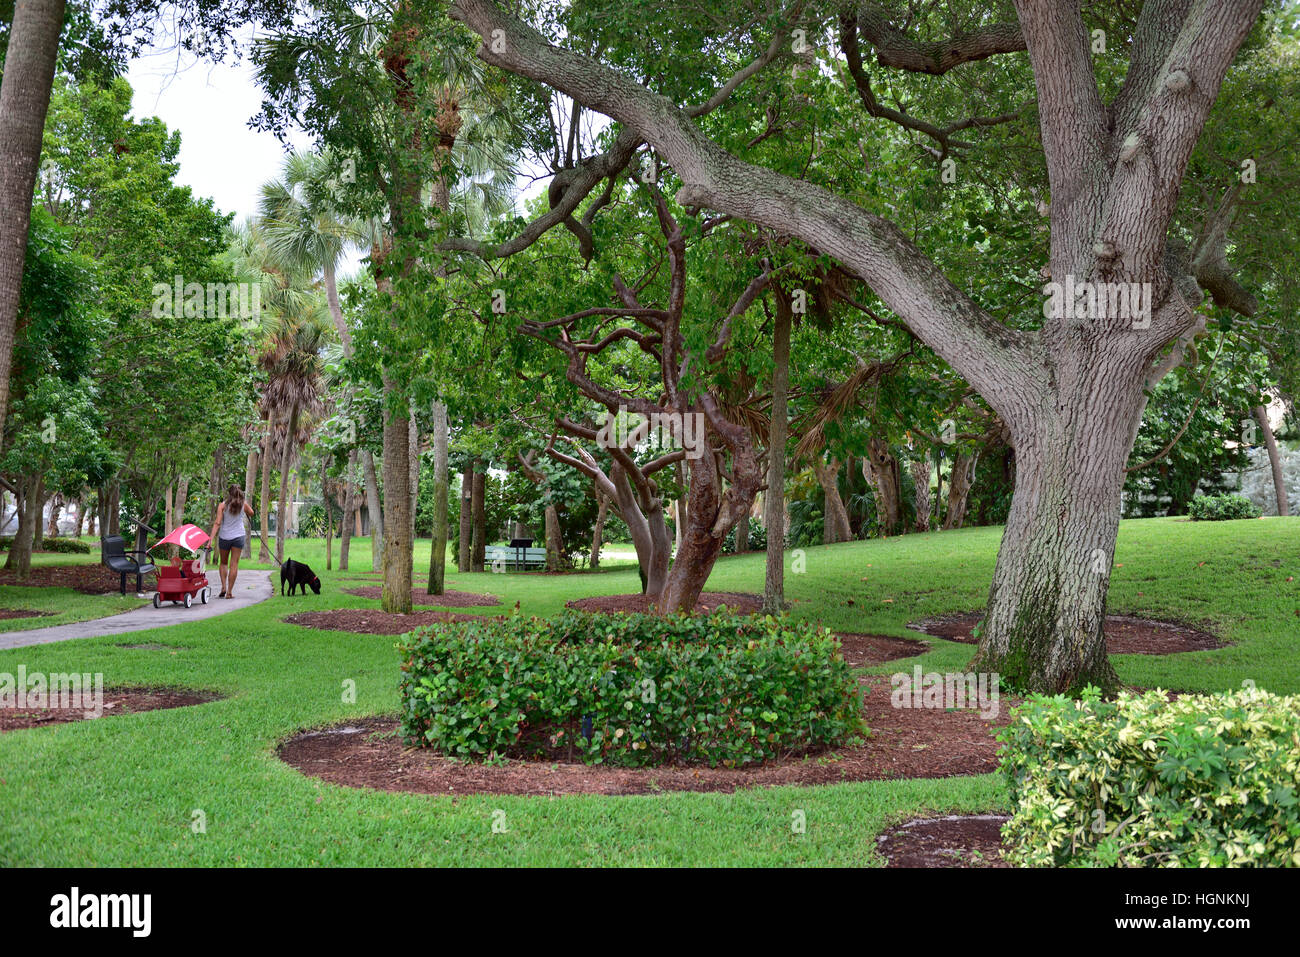 The small Pompano Beach Indian Mound park, Fort Lauderdale, Florida, USA - Stock Image